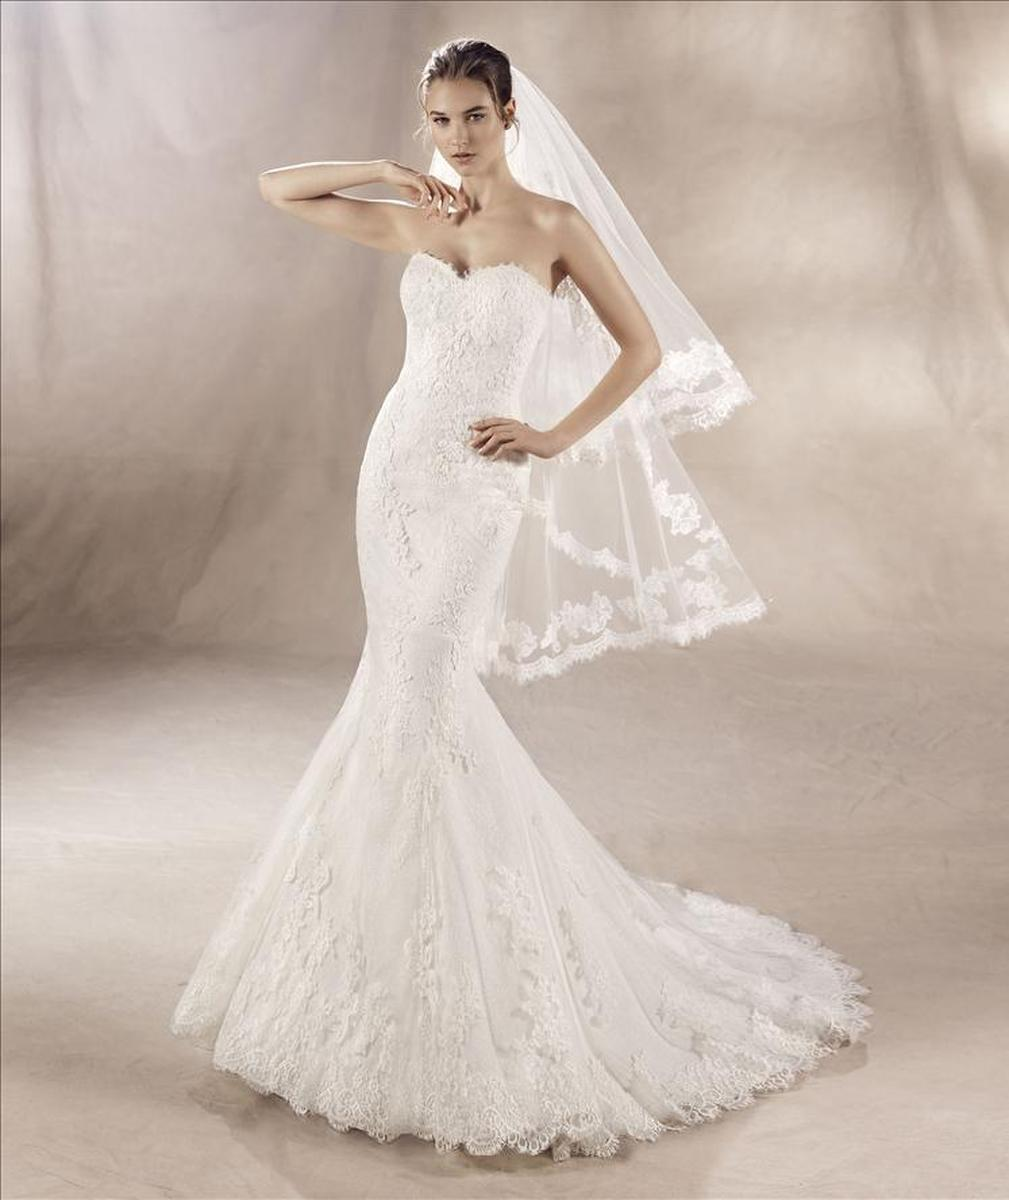 Pronovias White One Yumei